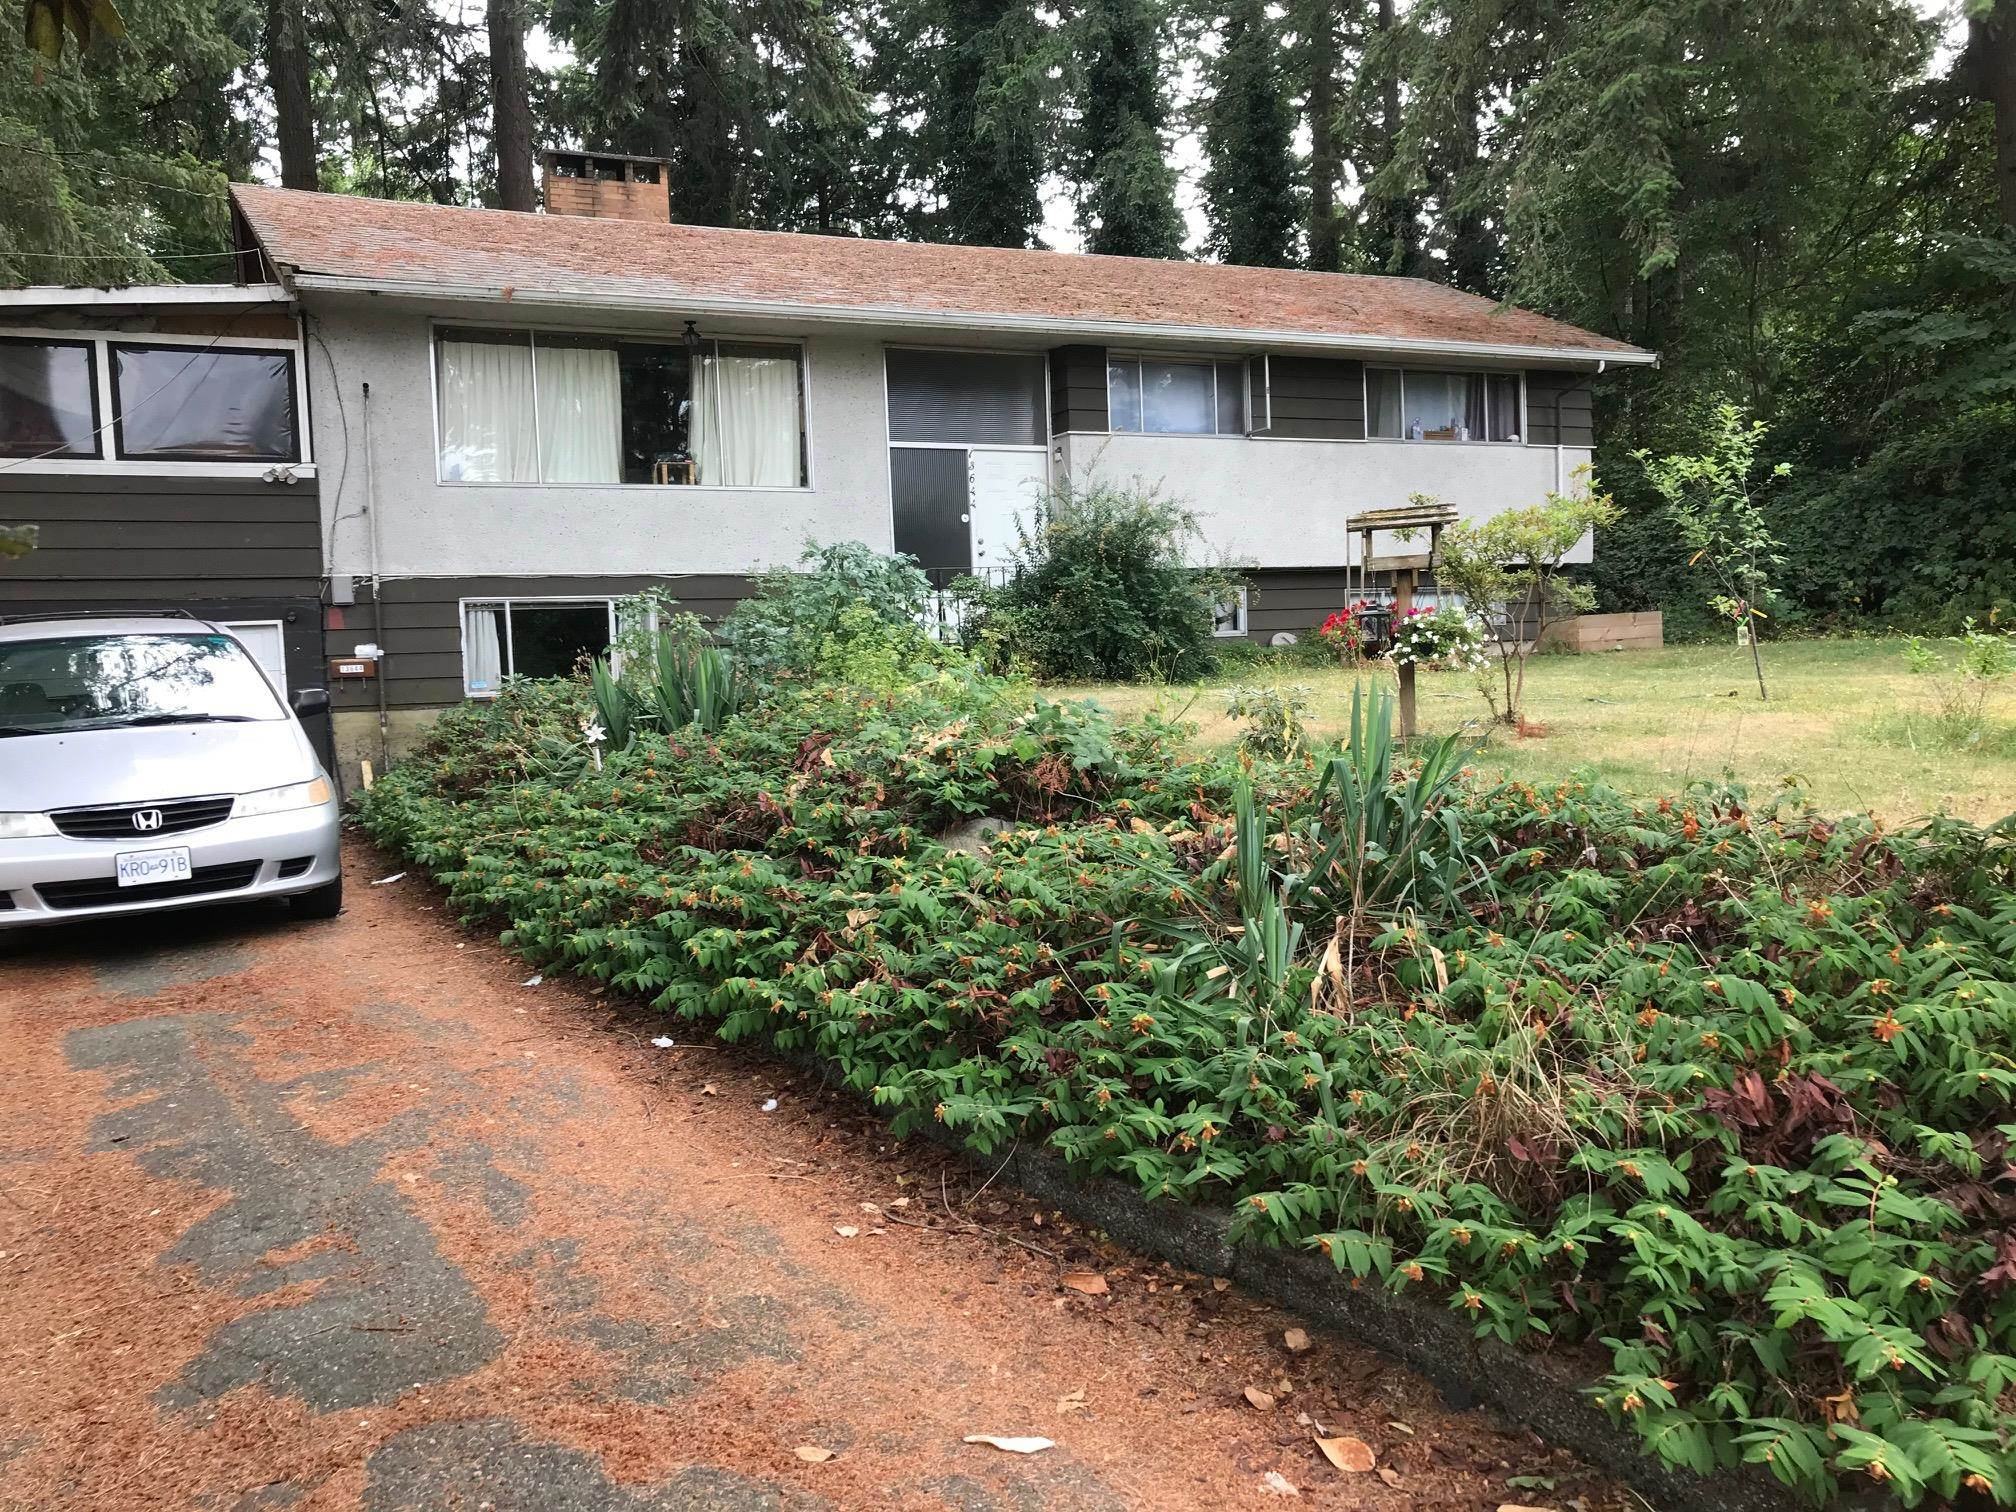 13644 60 AVENUE - Panorama Ridge House/Single Family for sale, 5 Bedrooms (R2625235) - #1